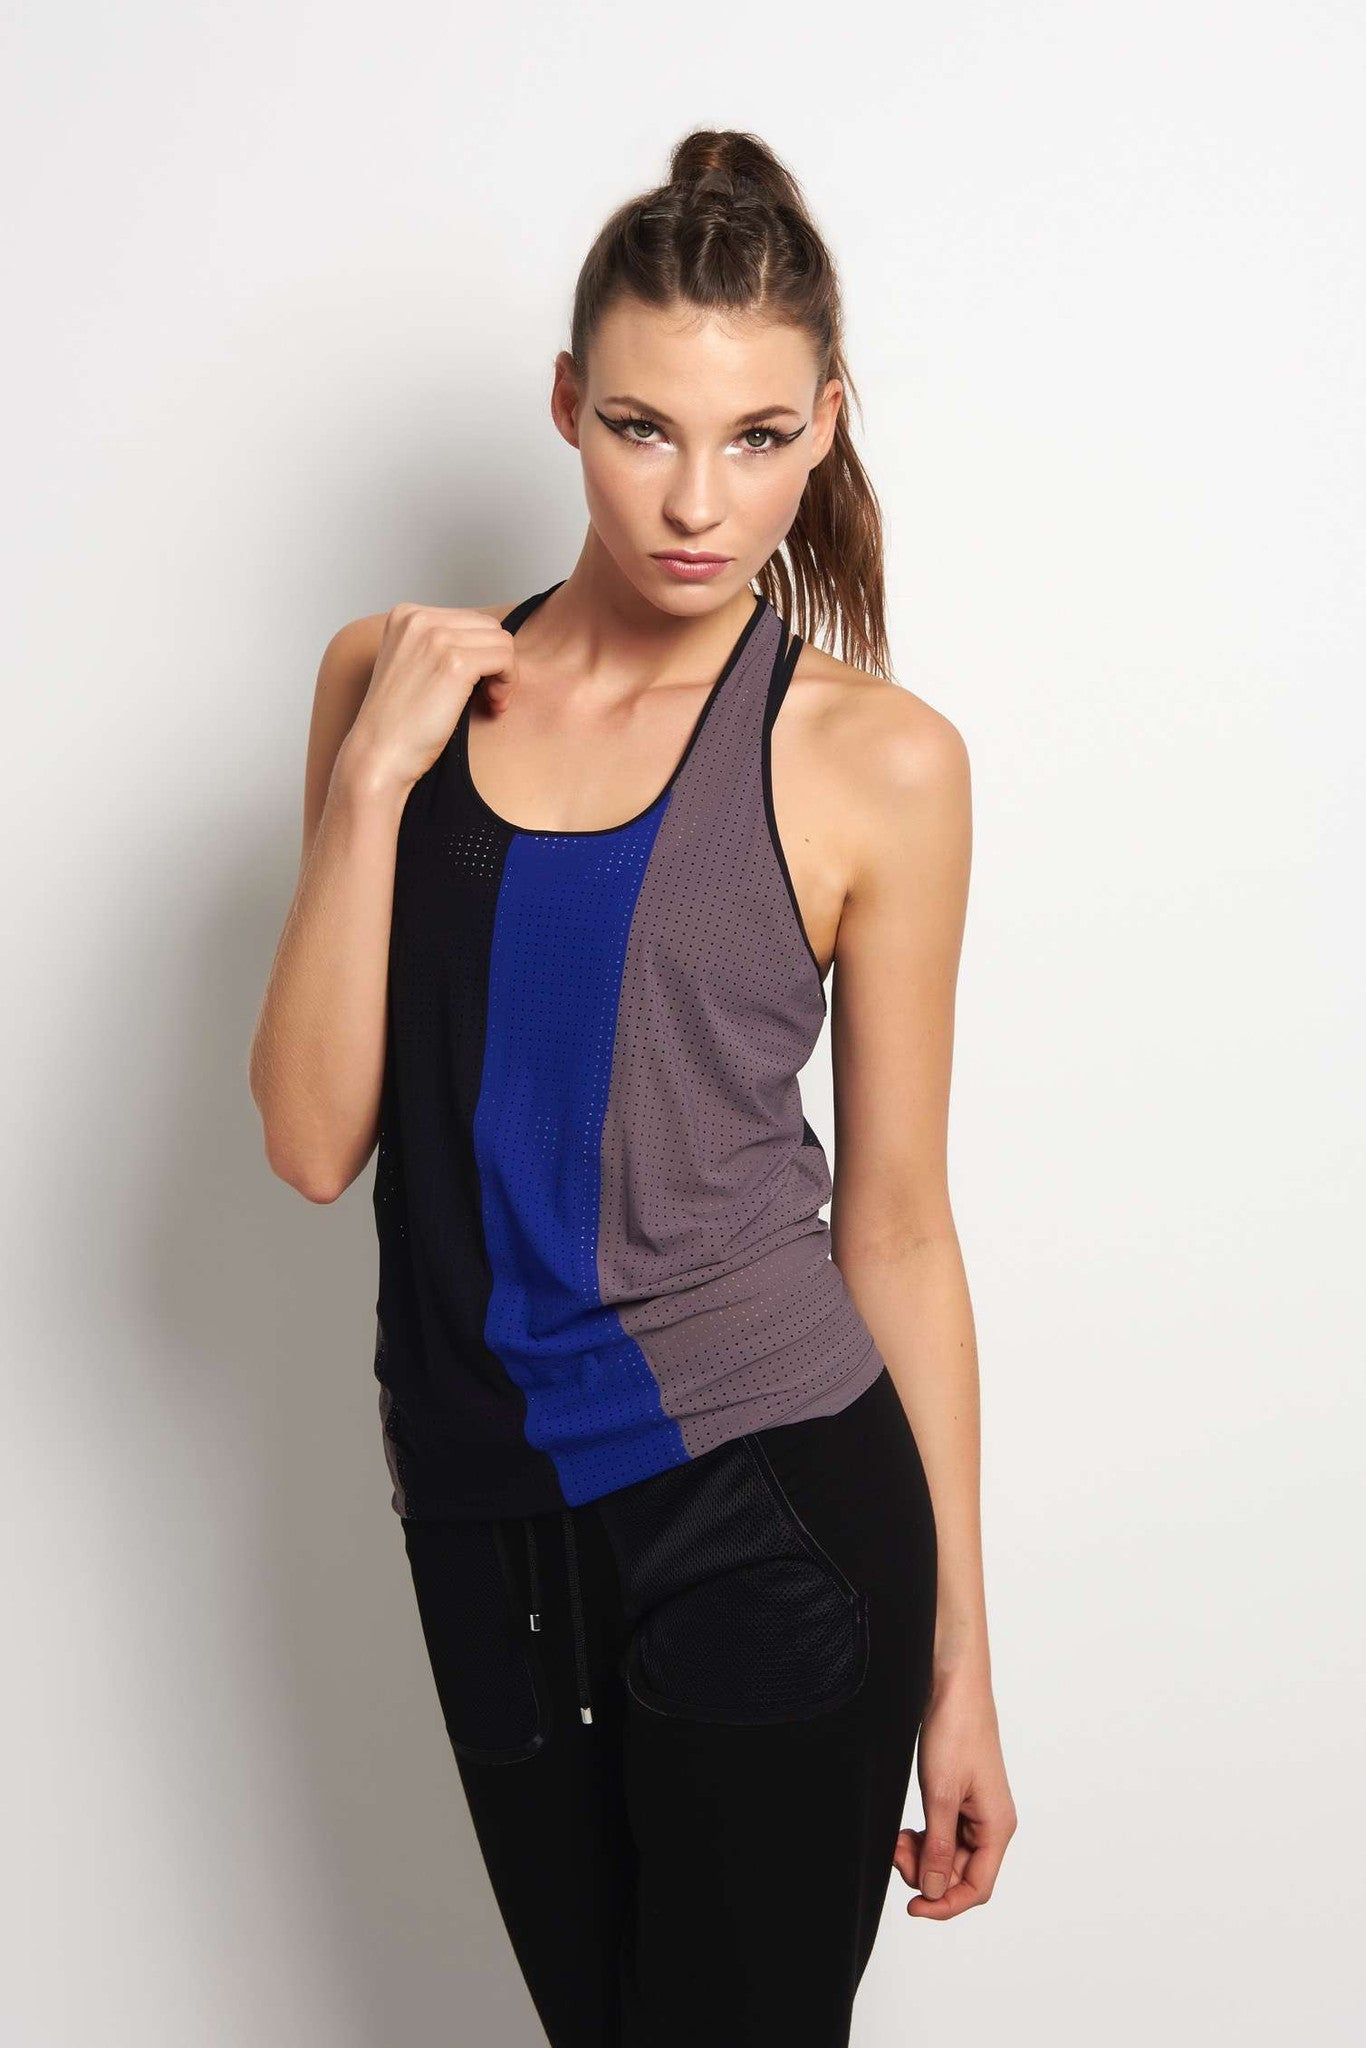 MONREAL Racer Tank - Taupe/Joy/Black image 1 - The Sports Edit